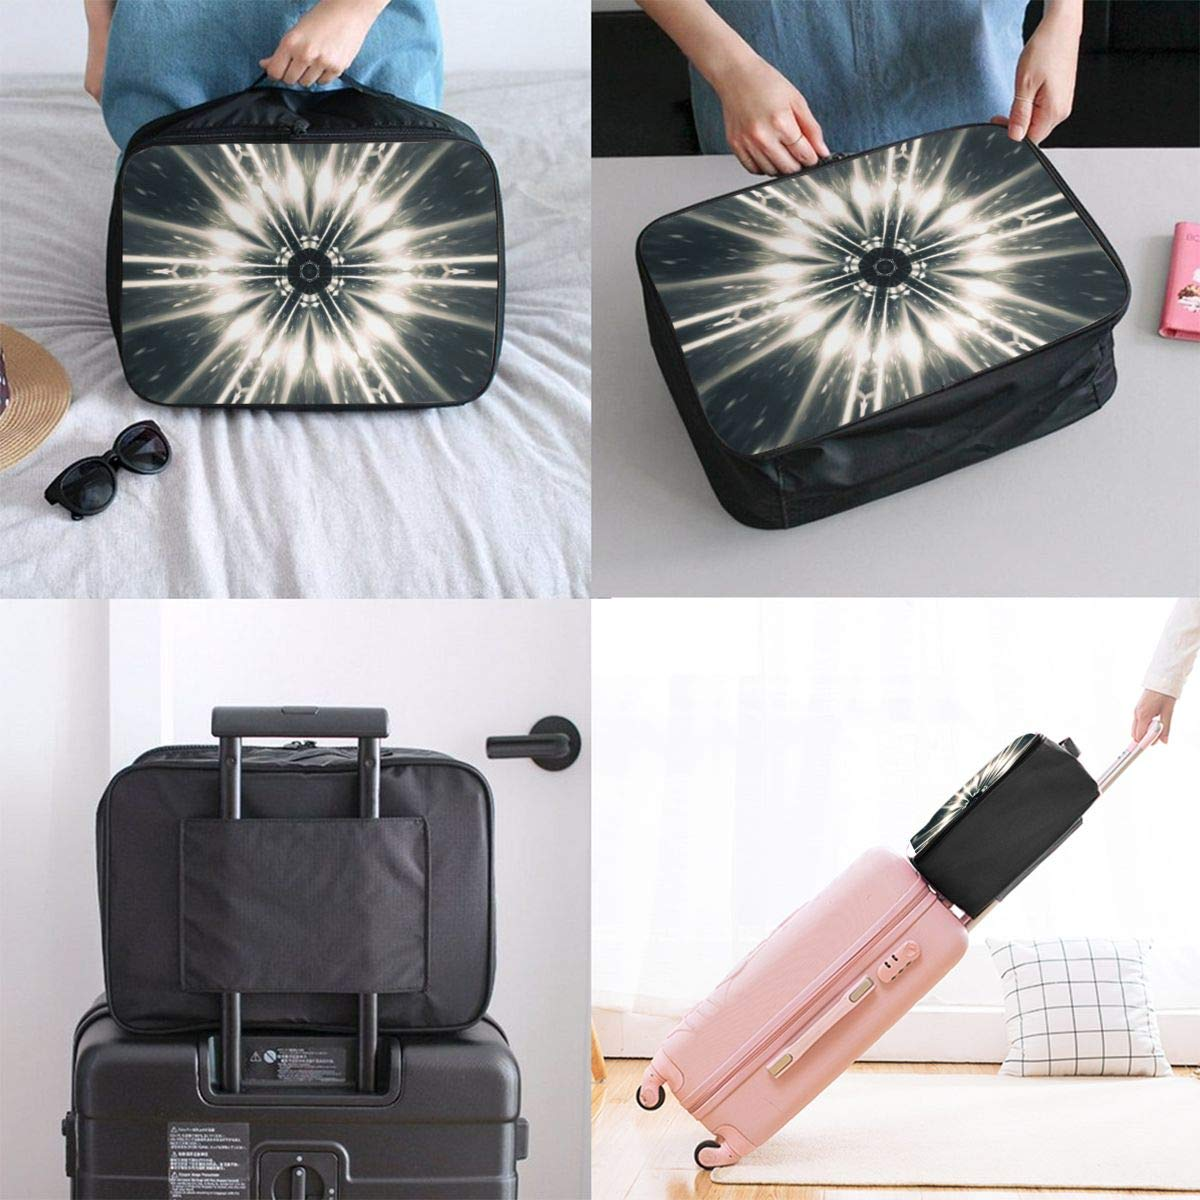 Abstract Surreal Texture Geometry Travel Lightweight Waterproof Foldable Storage Carry Luggage Large Capacity Portable Luggage Bag Duffel Bag